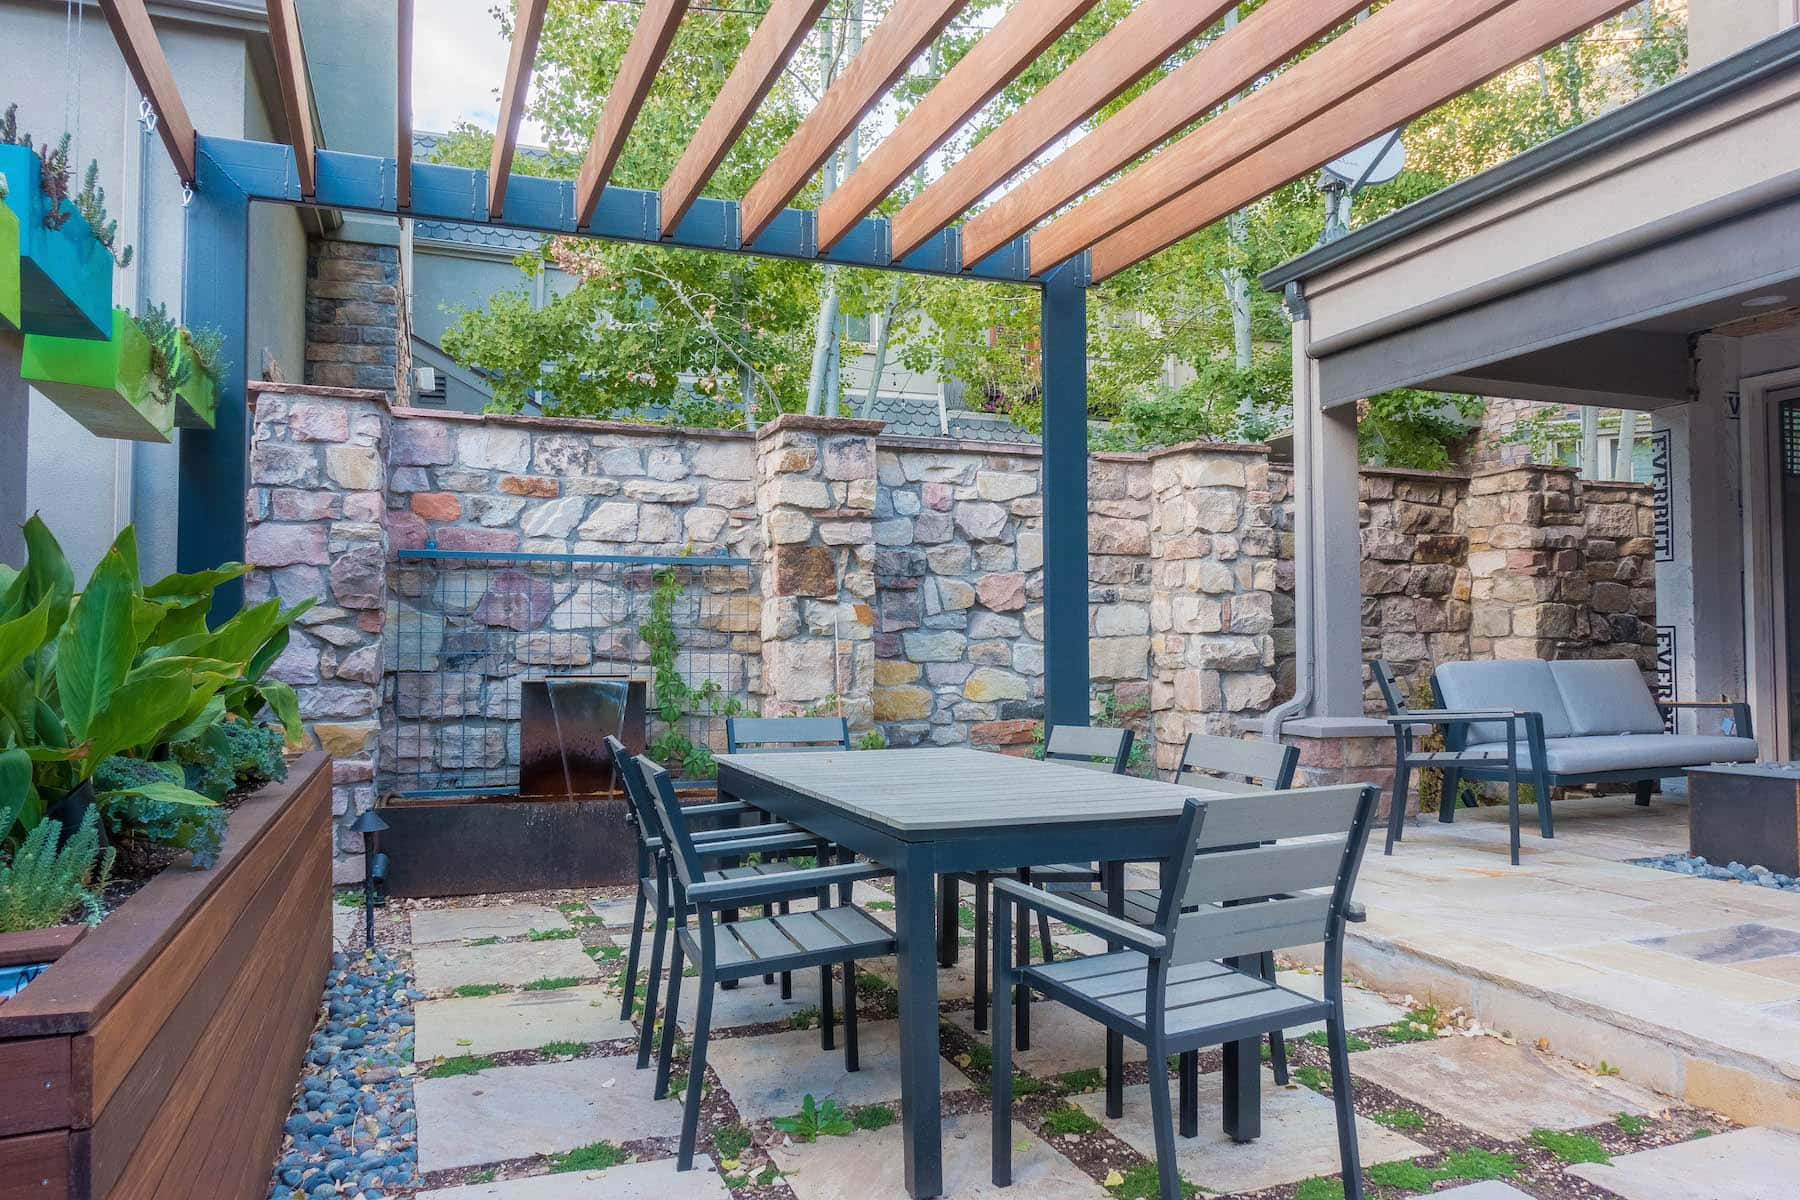 Landscape Pergola Outdoor Dining Water Feature Patio Rooftop Deck LoHi Denver CO